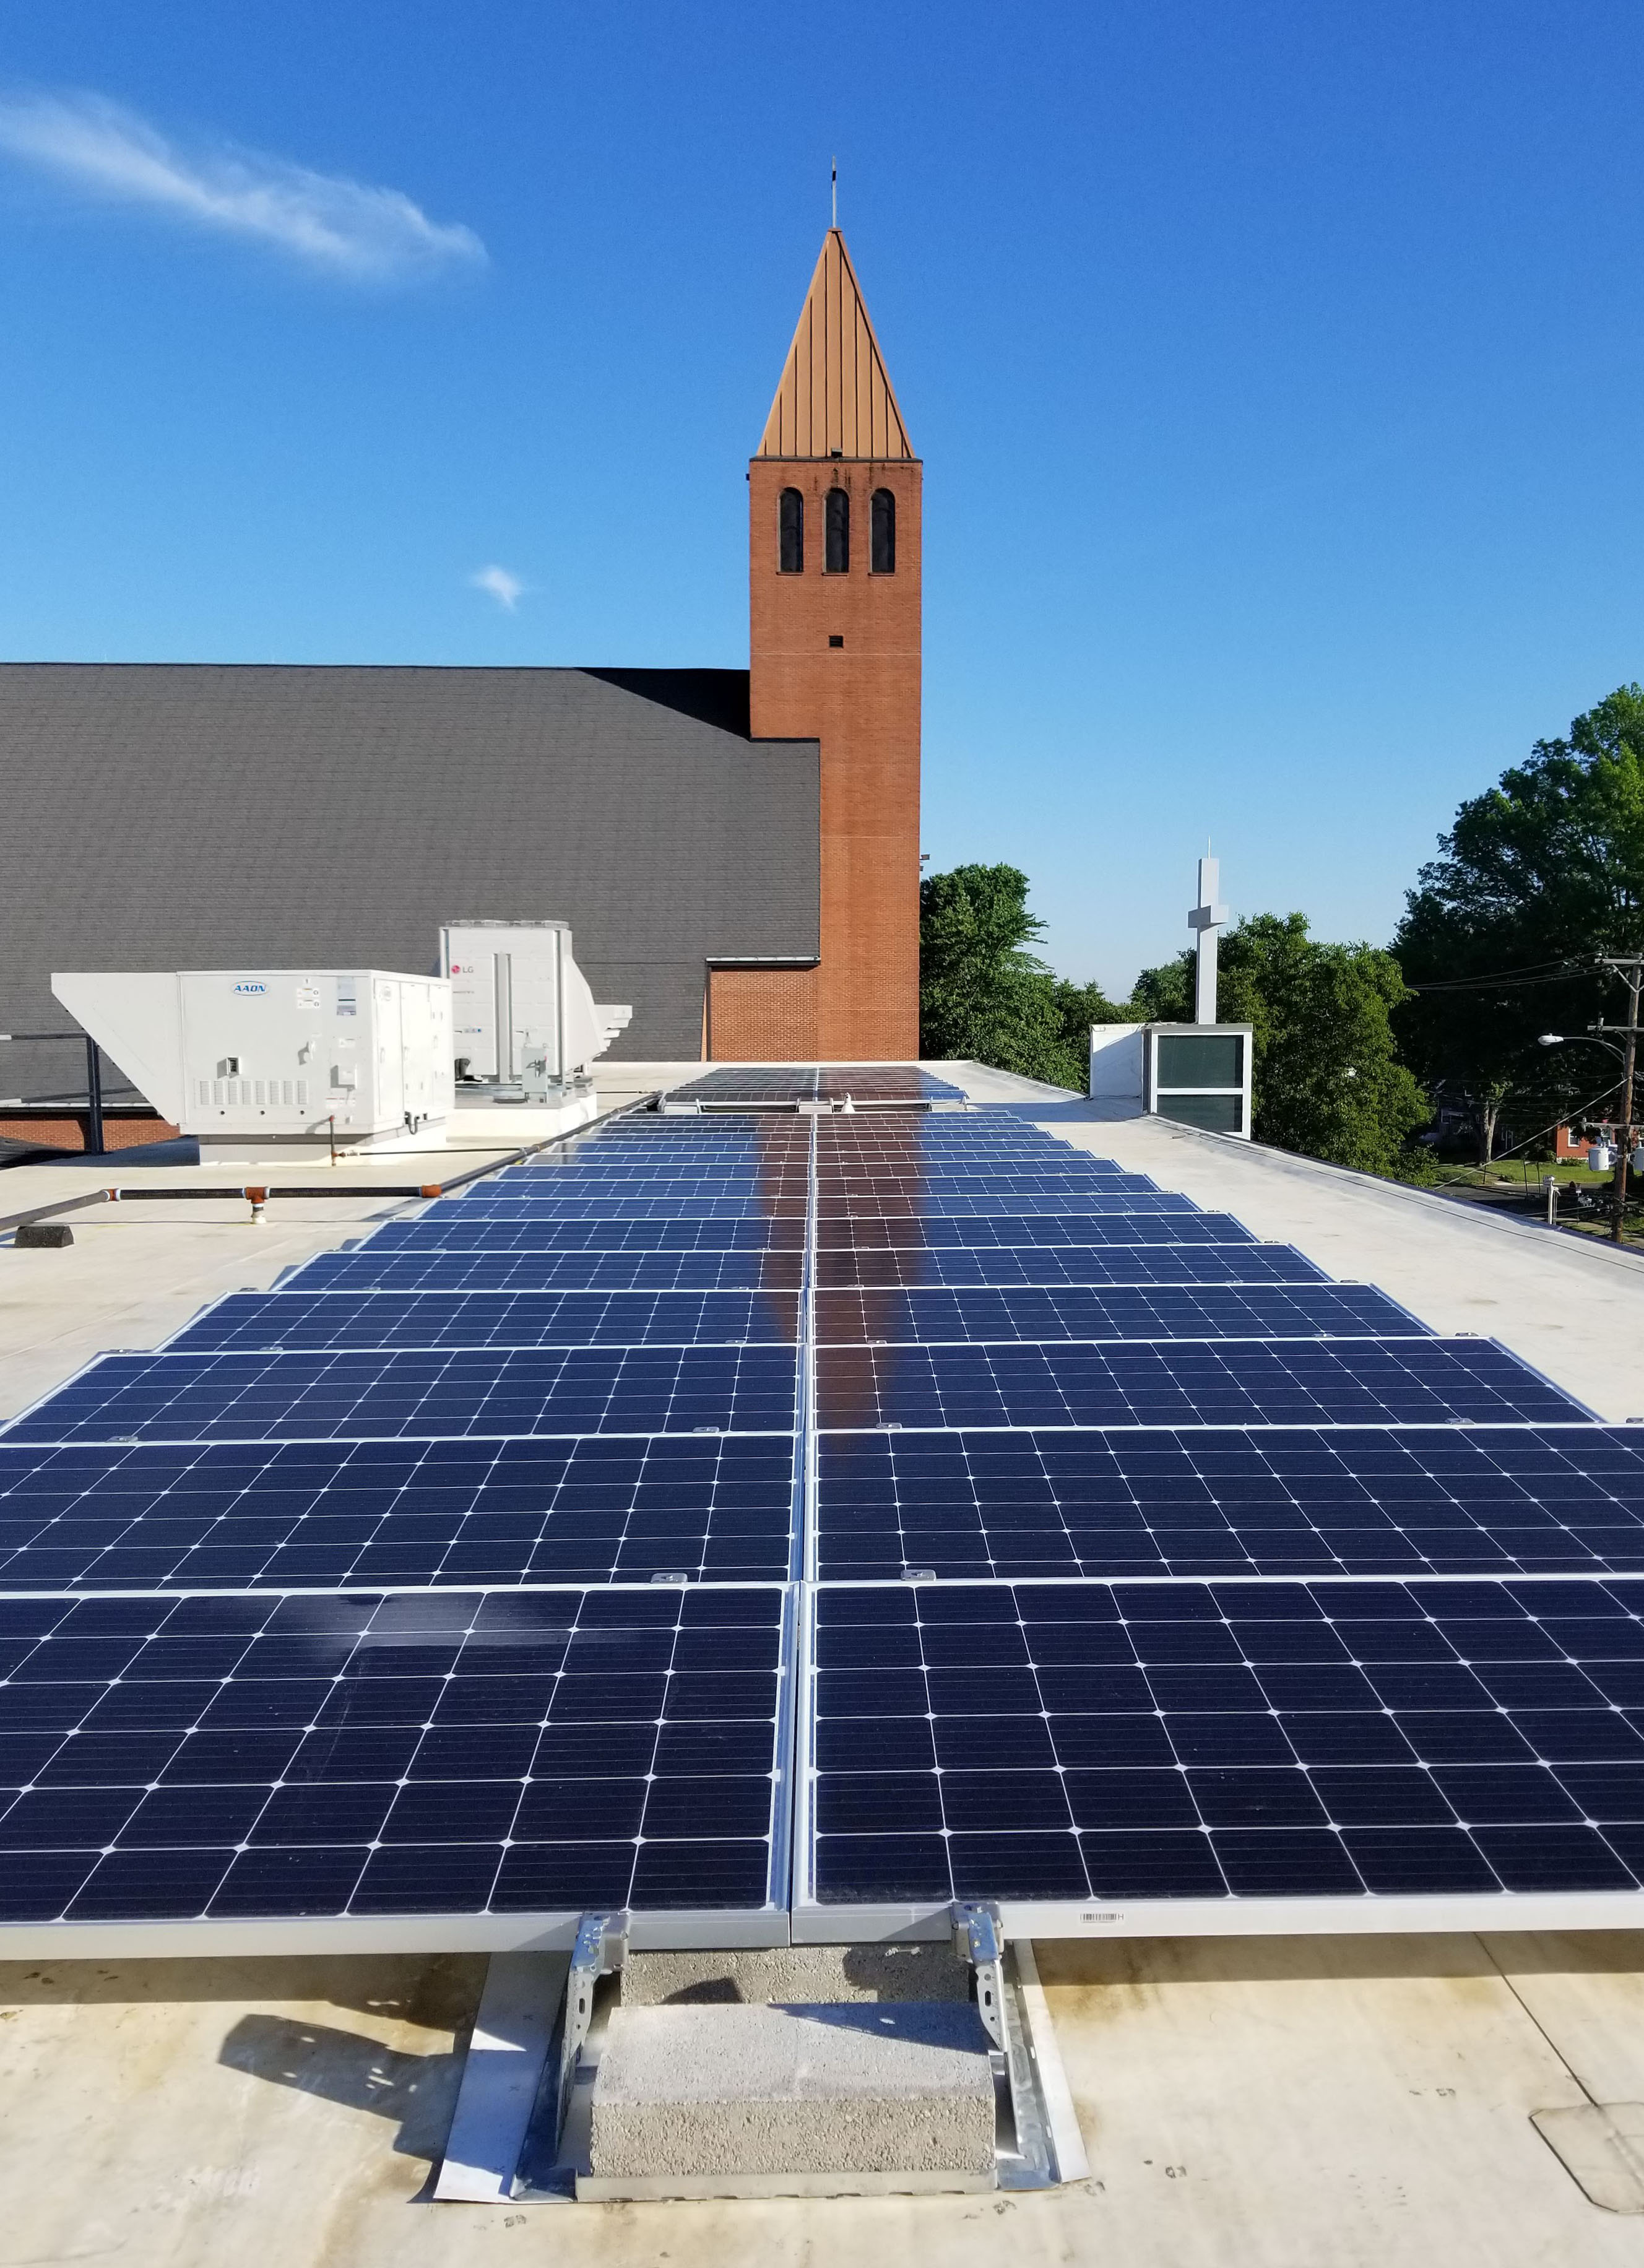 Archdiocese Of Louisville And Lg Amp E Make History With New